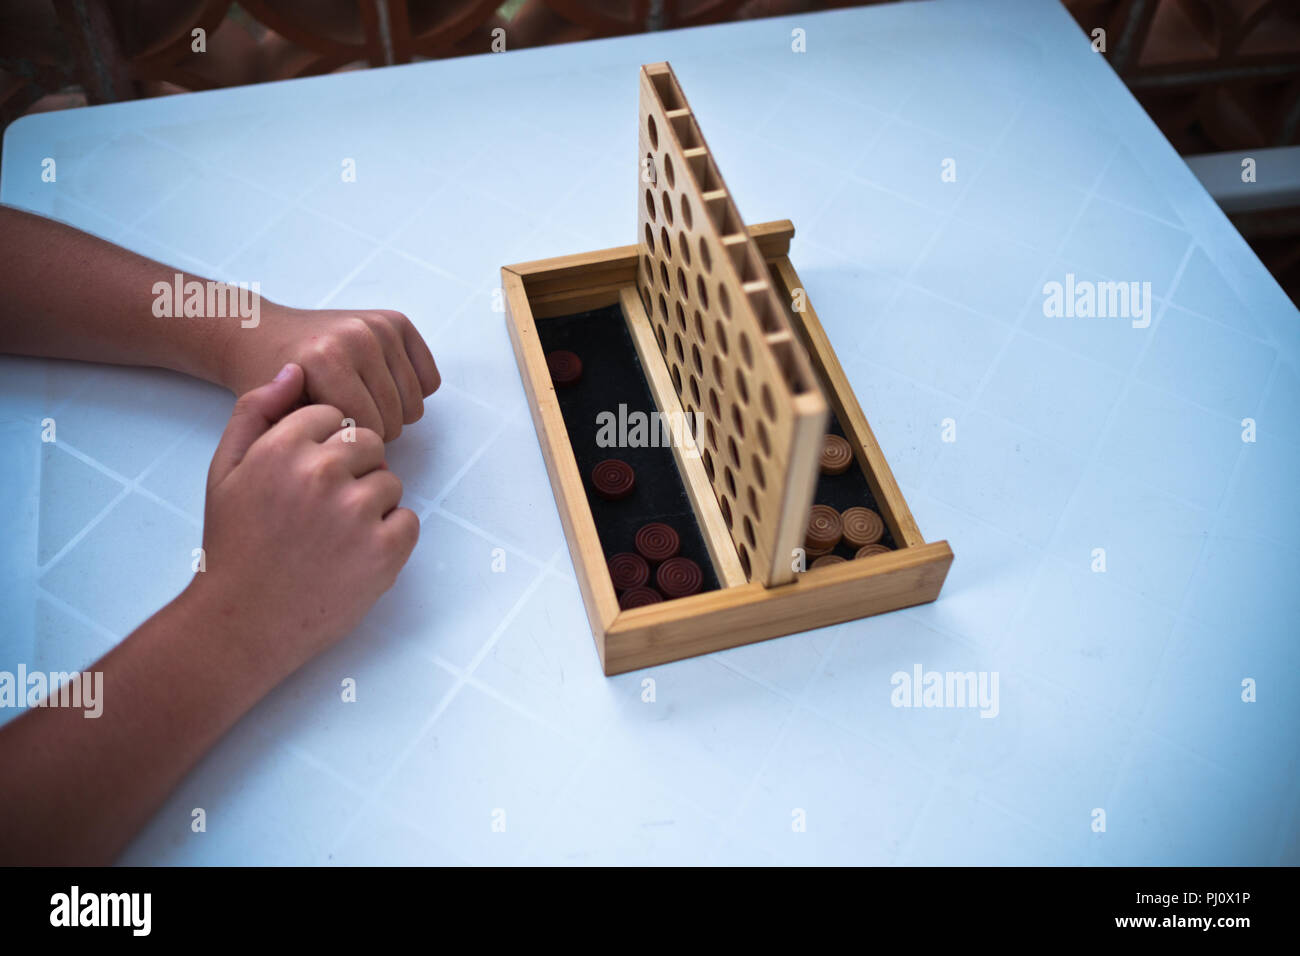 close up of bare arms with hands touching preparing to play game on wooden Connect four game on plastic white table on outdoor terrace in summer - Stock Image